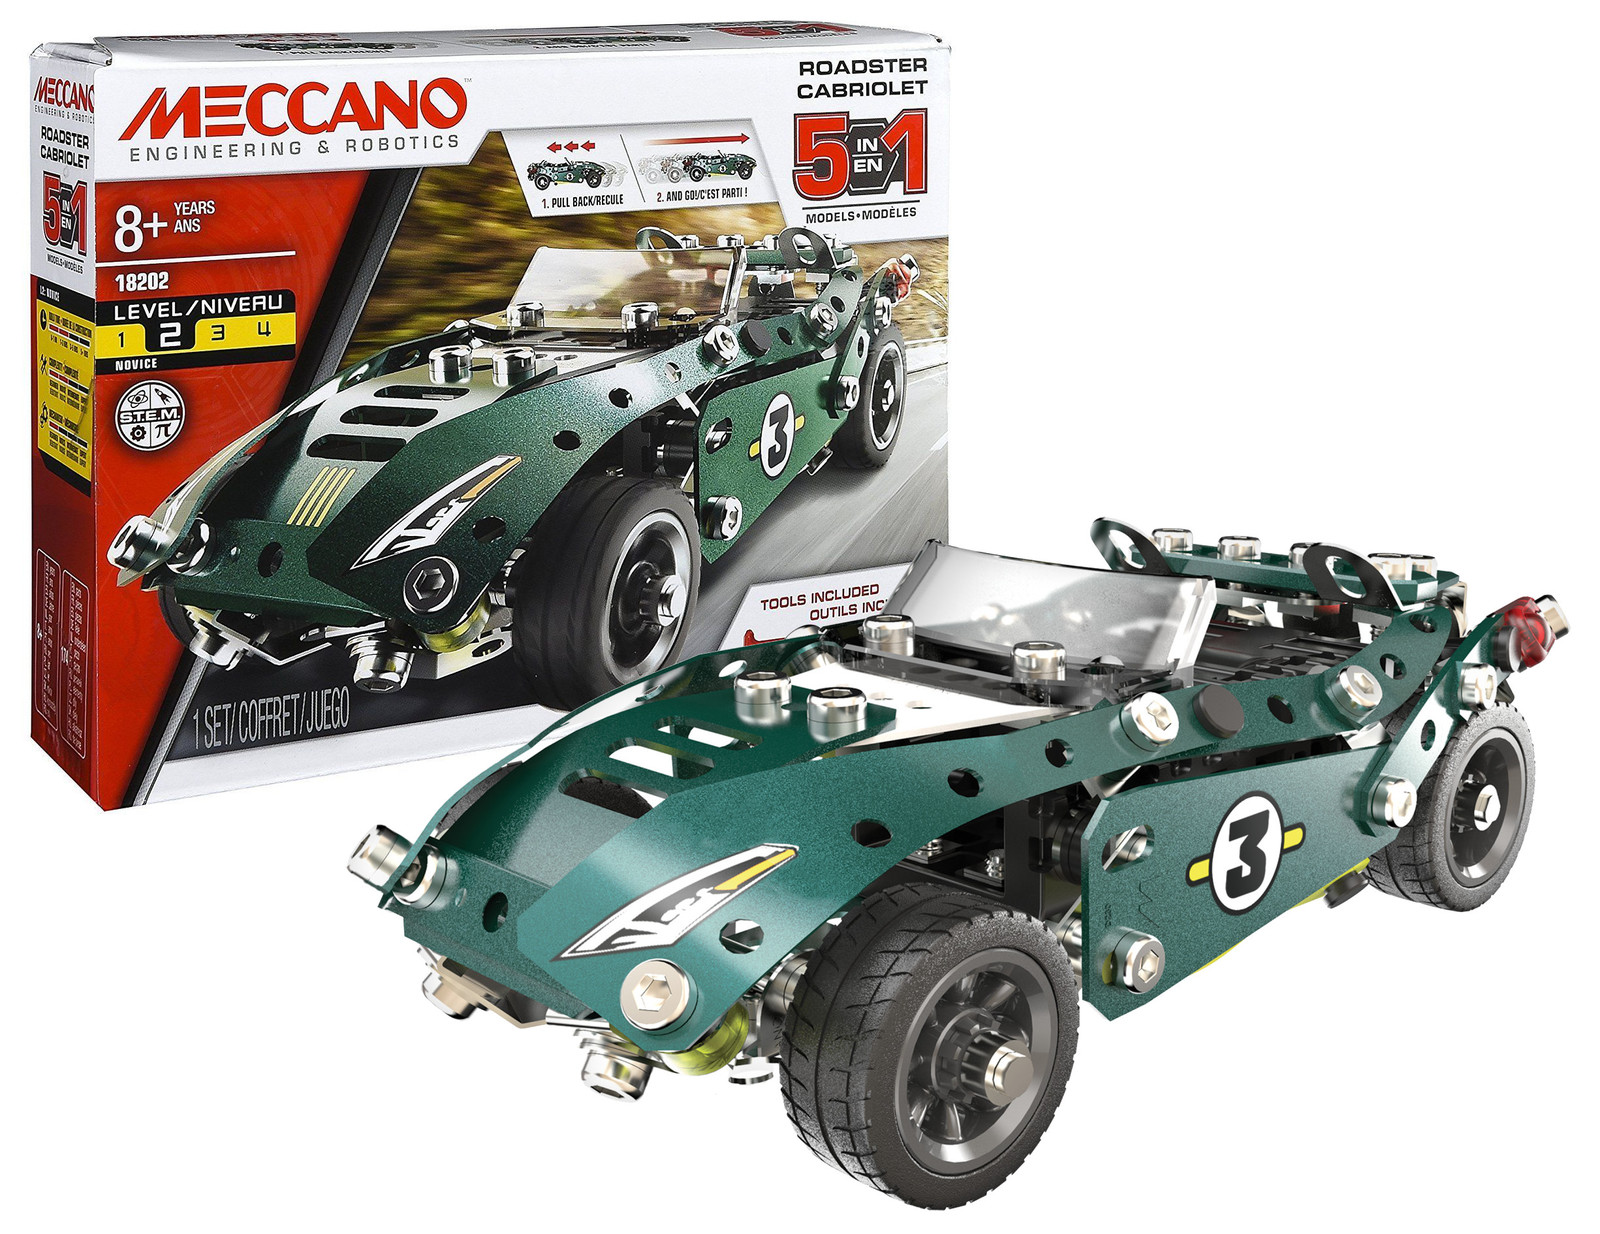 Meccano 5 In 1 Roadster Pull Back Car Toy At Mighty Ape Nz